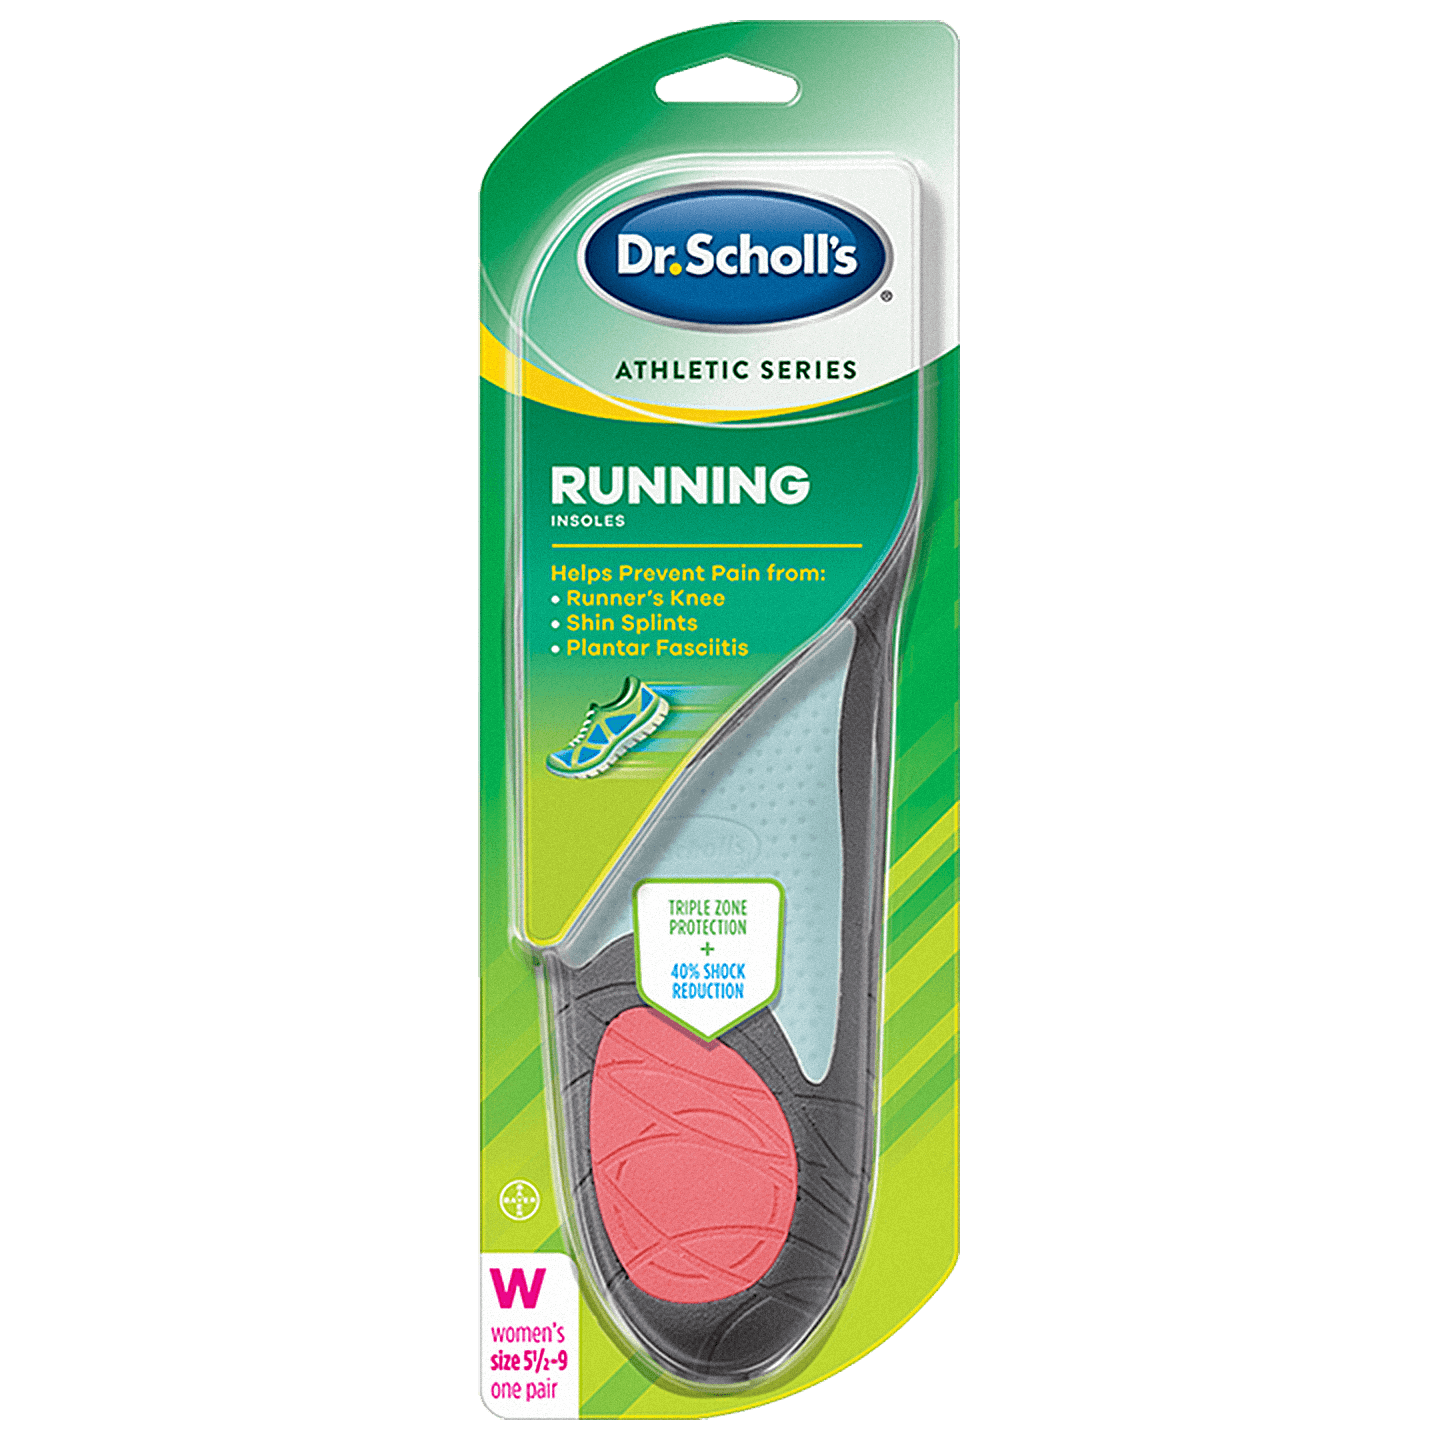 dr scholls running insoles review